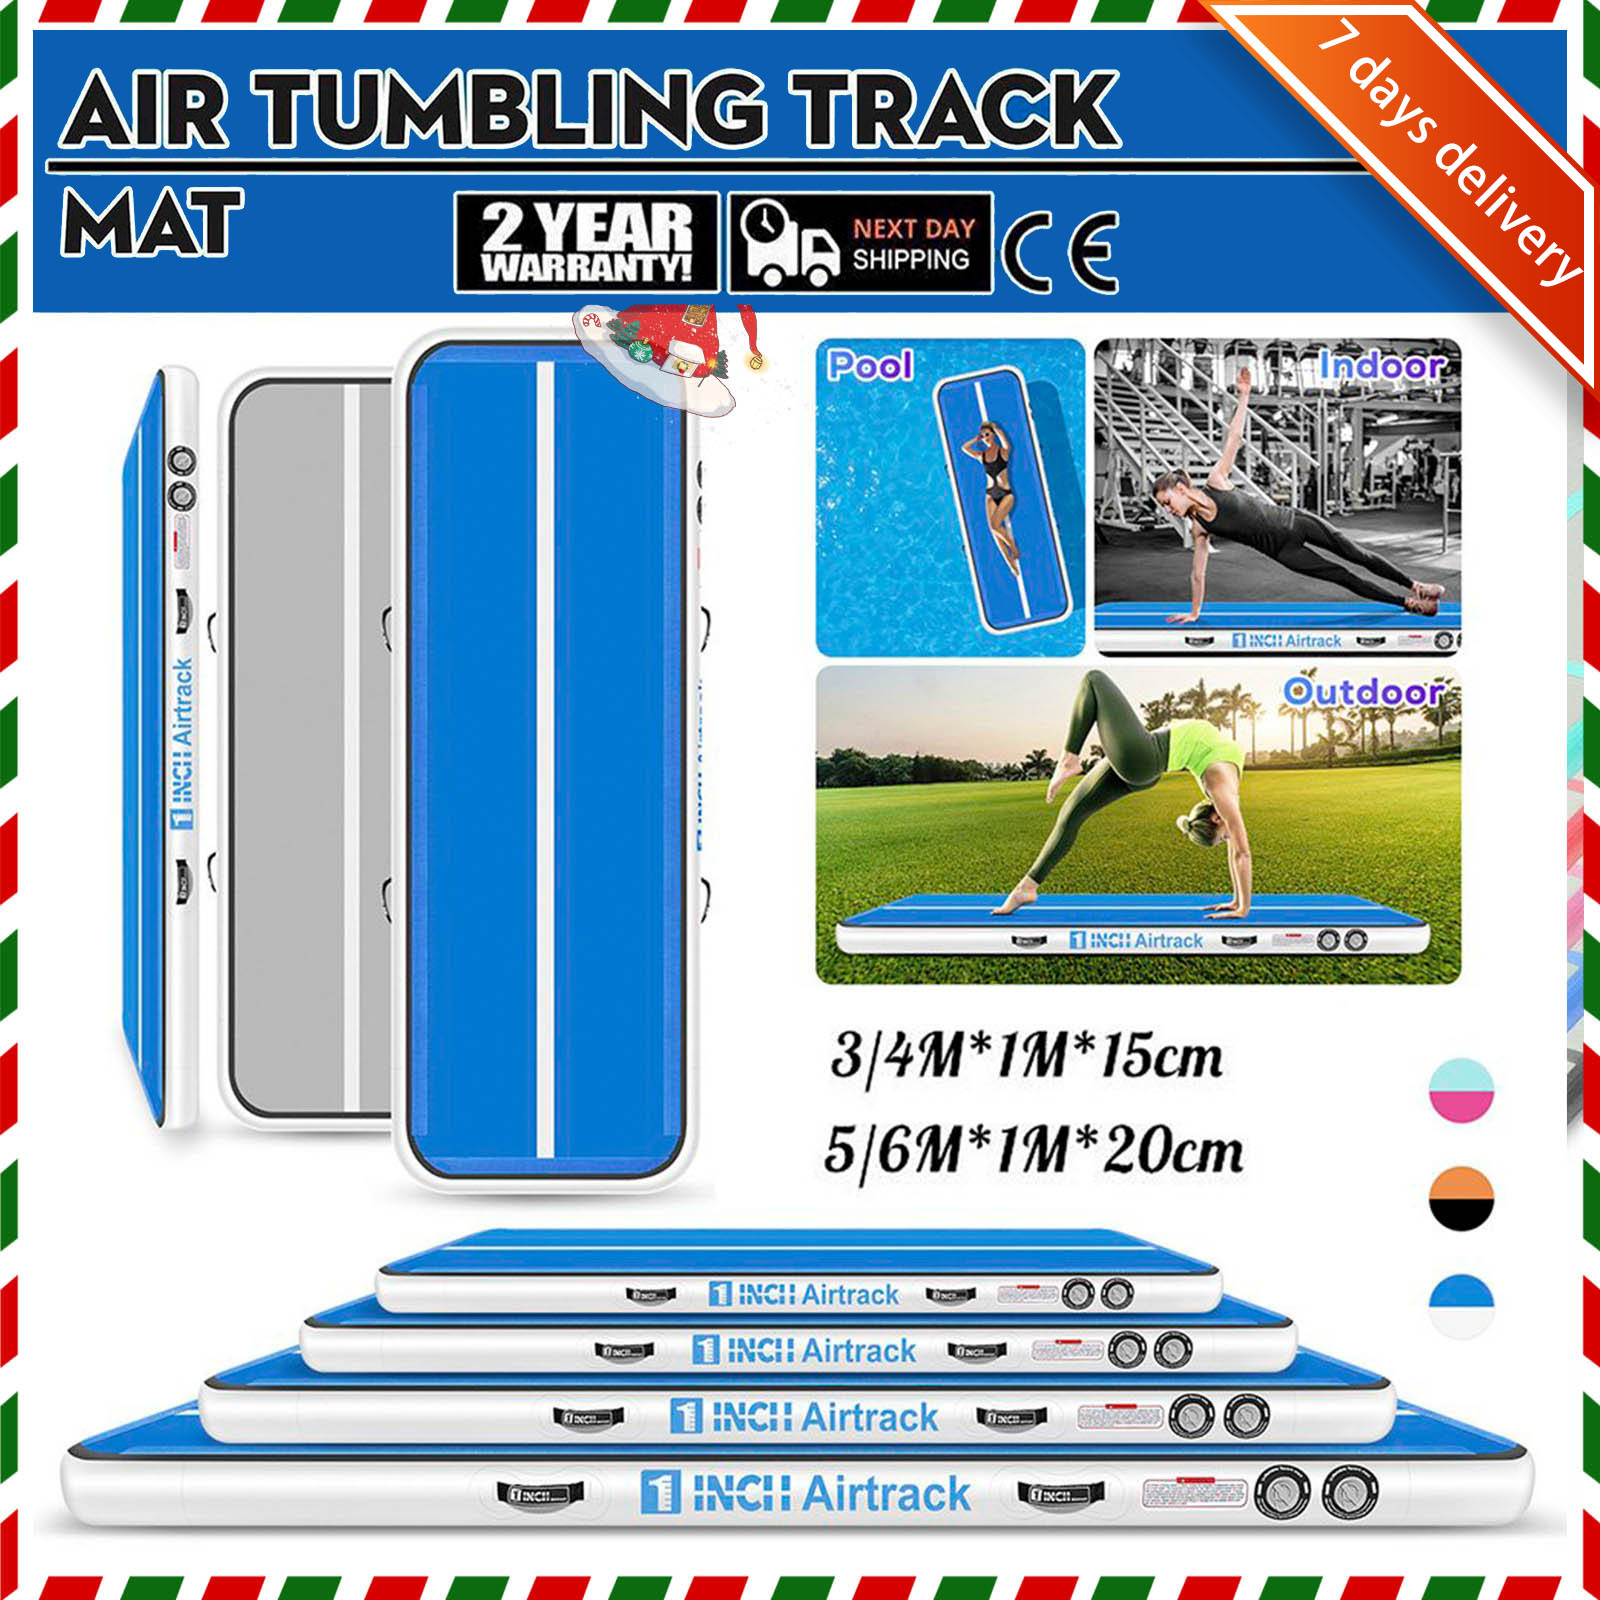 Rimdoc 4M Tumble Airtrack Floor Gym Air Track for Christmas Gift for <font><b>Kids</b></font> Yoga Olympics Tumbling with free Electronic Pump Home image